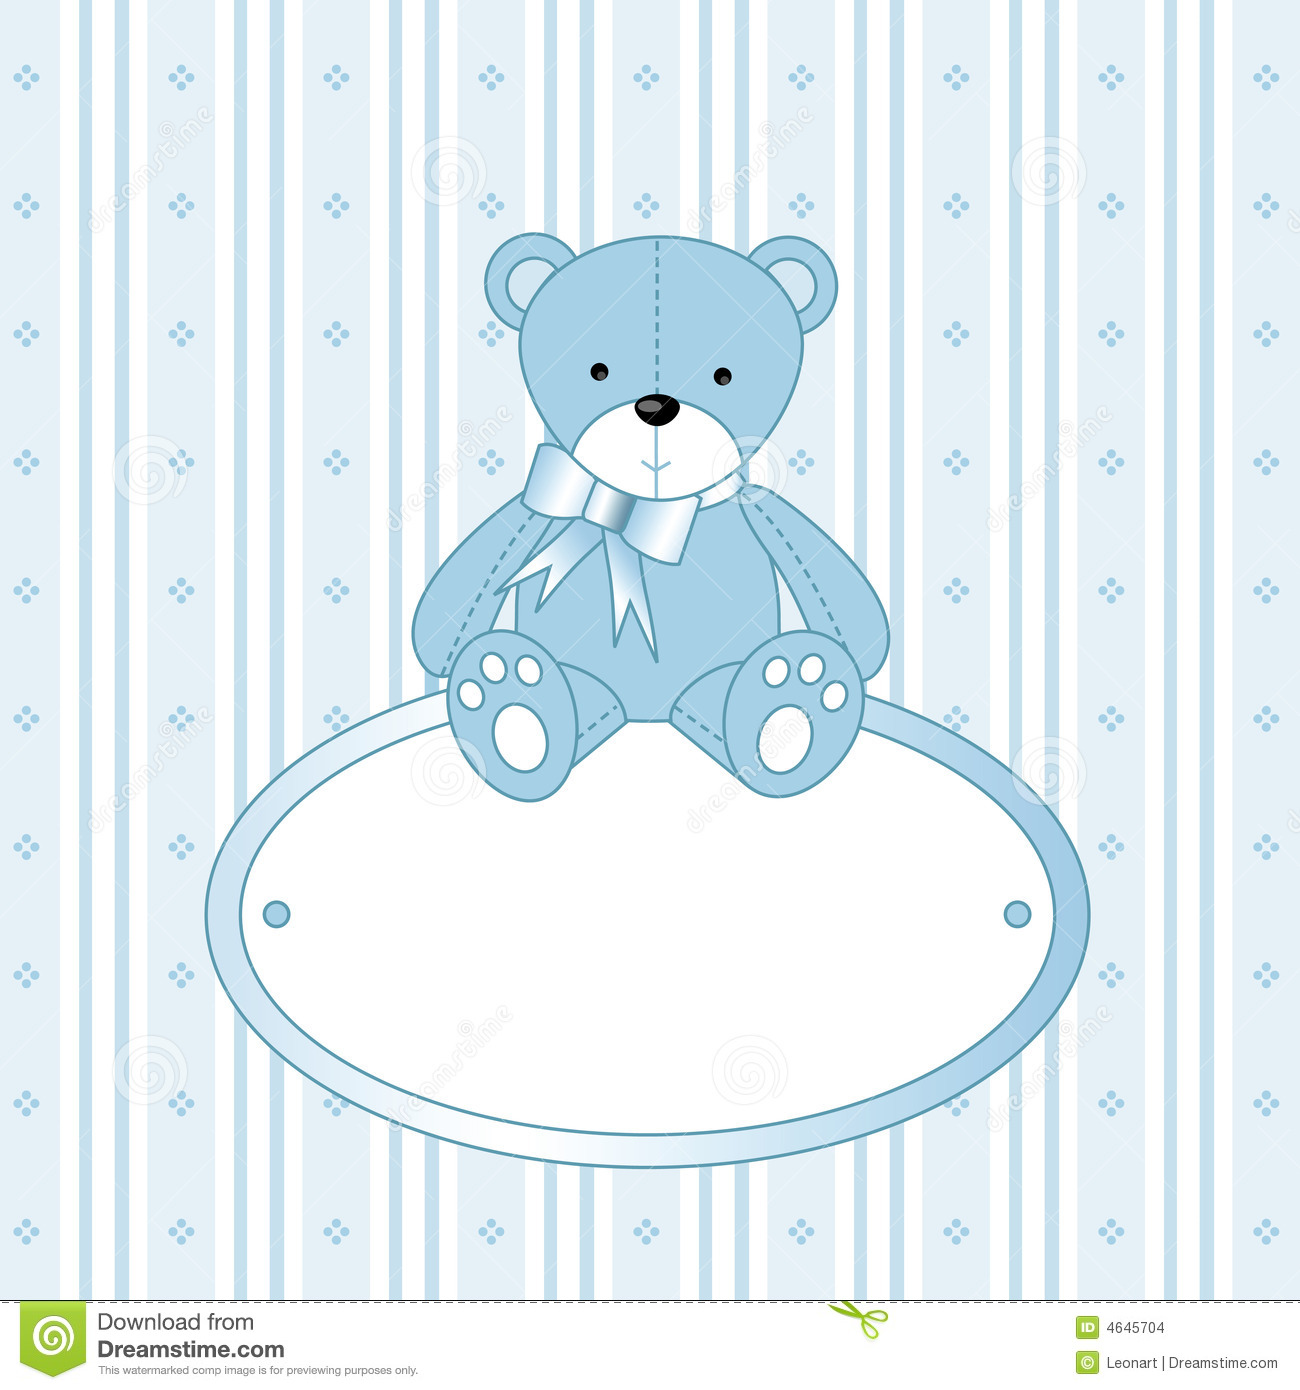 Baby boy teddy bear clip art - photo#25